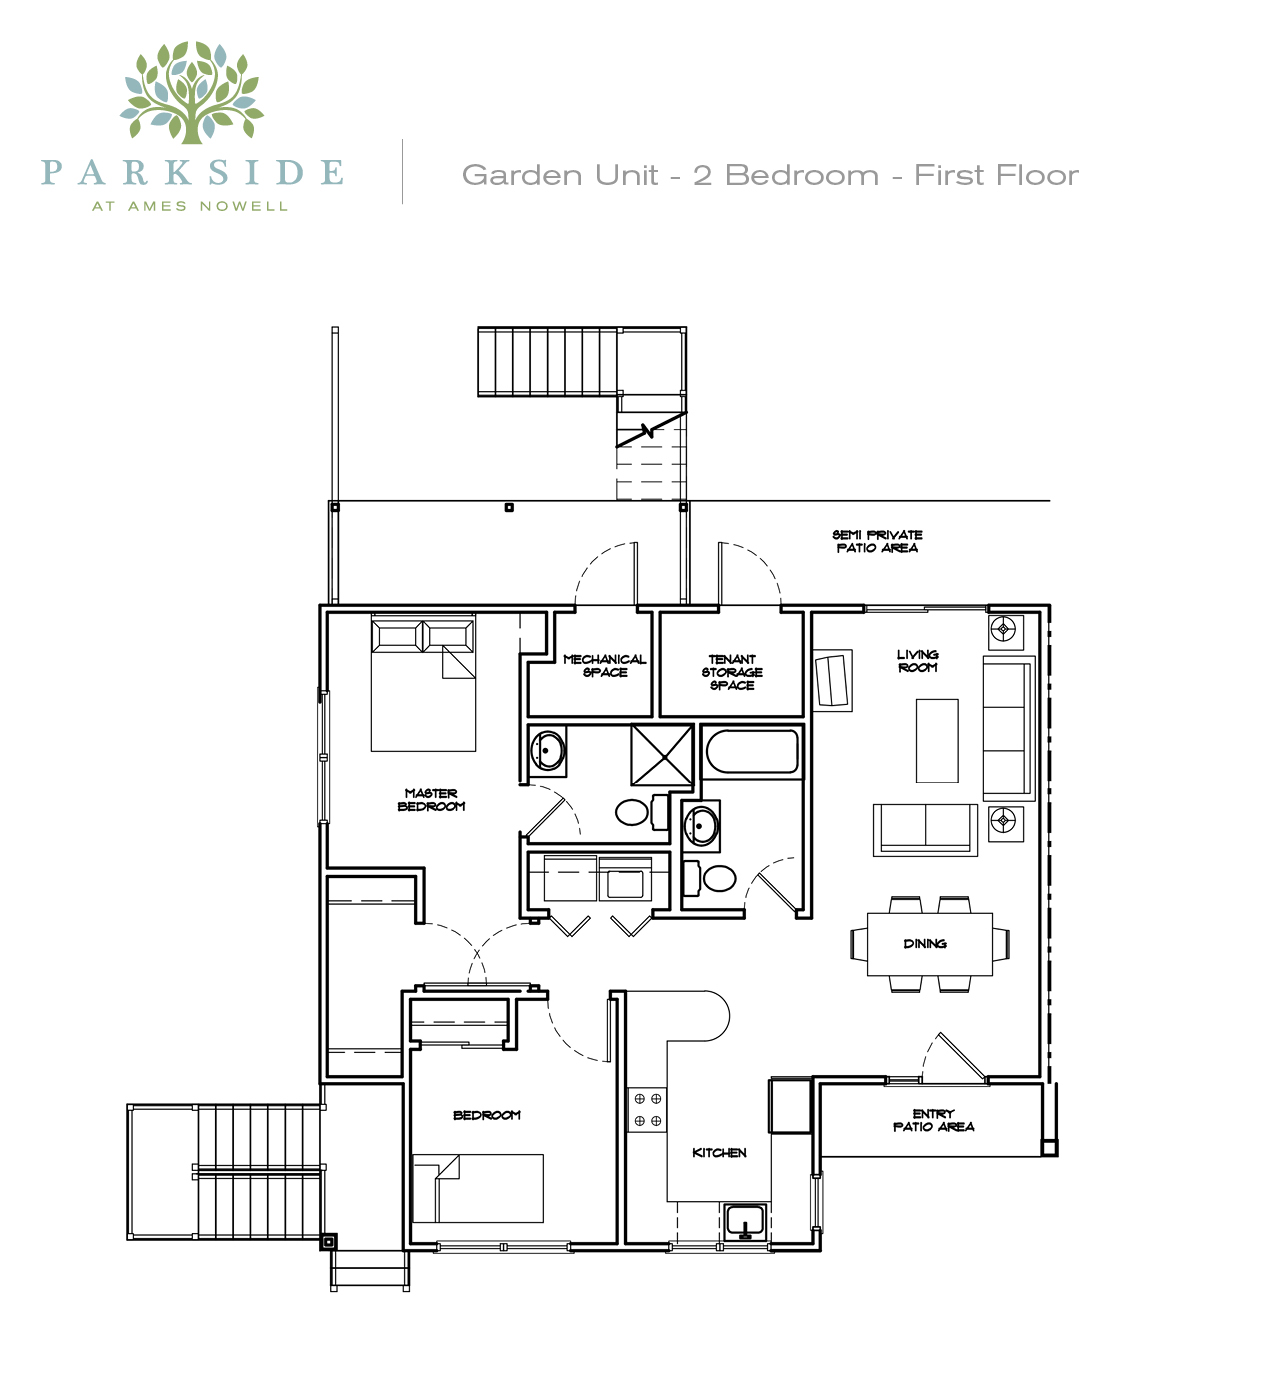 Parkside 1 Garden 2 Bedroom